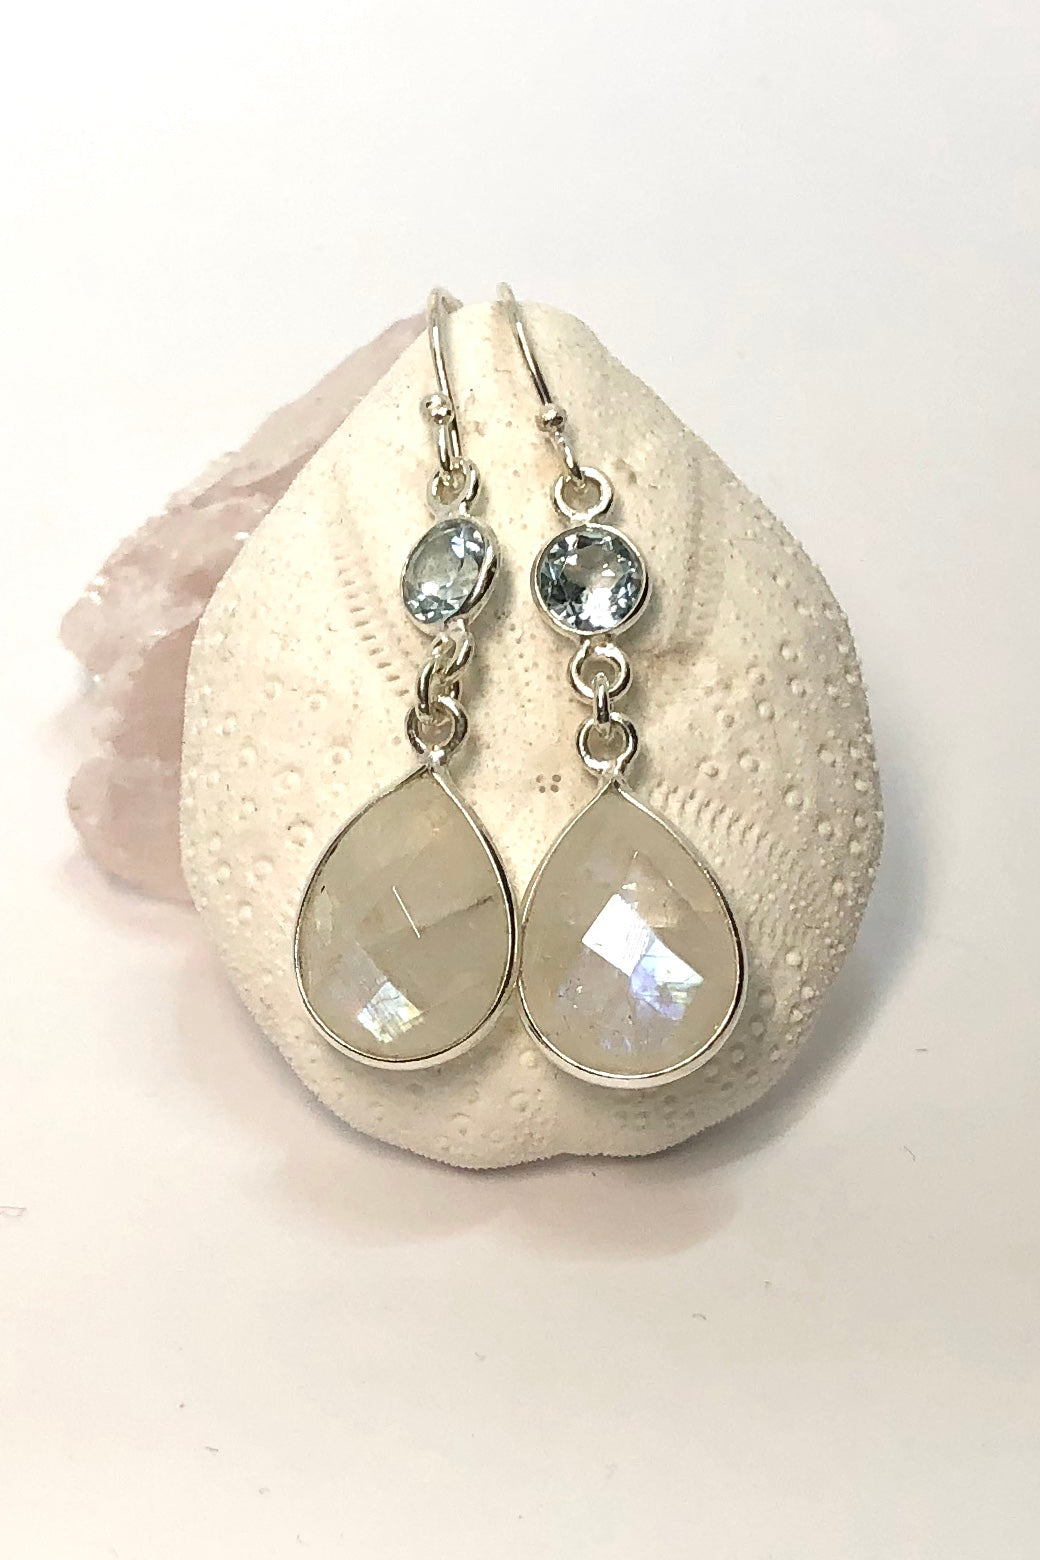 our new Oracle Earrings Moon Shine add a pretty spot of shine and sparkle to your day or night.